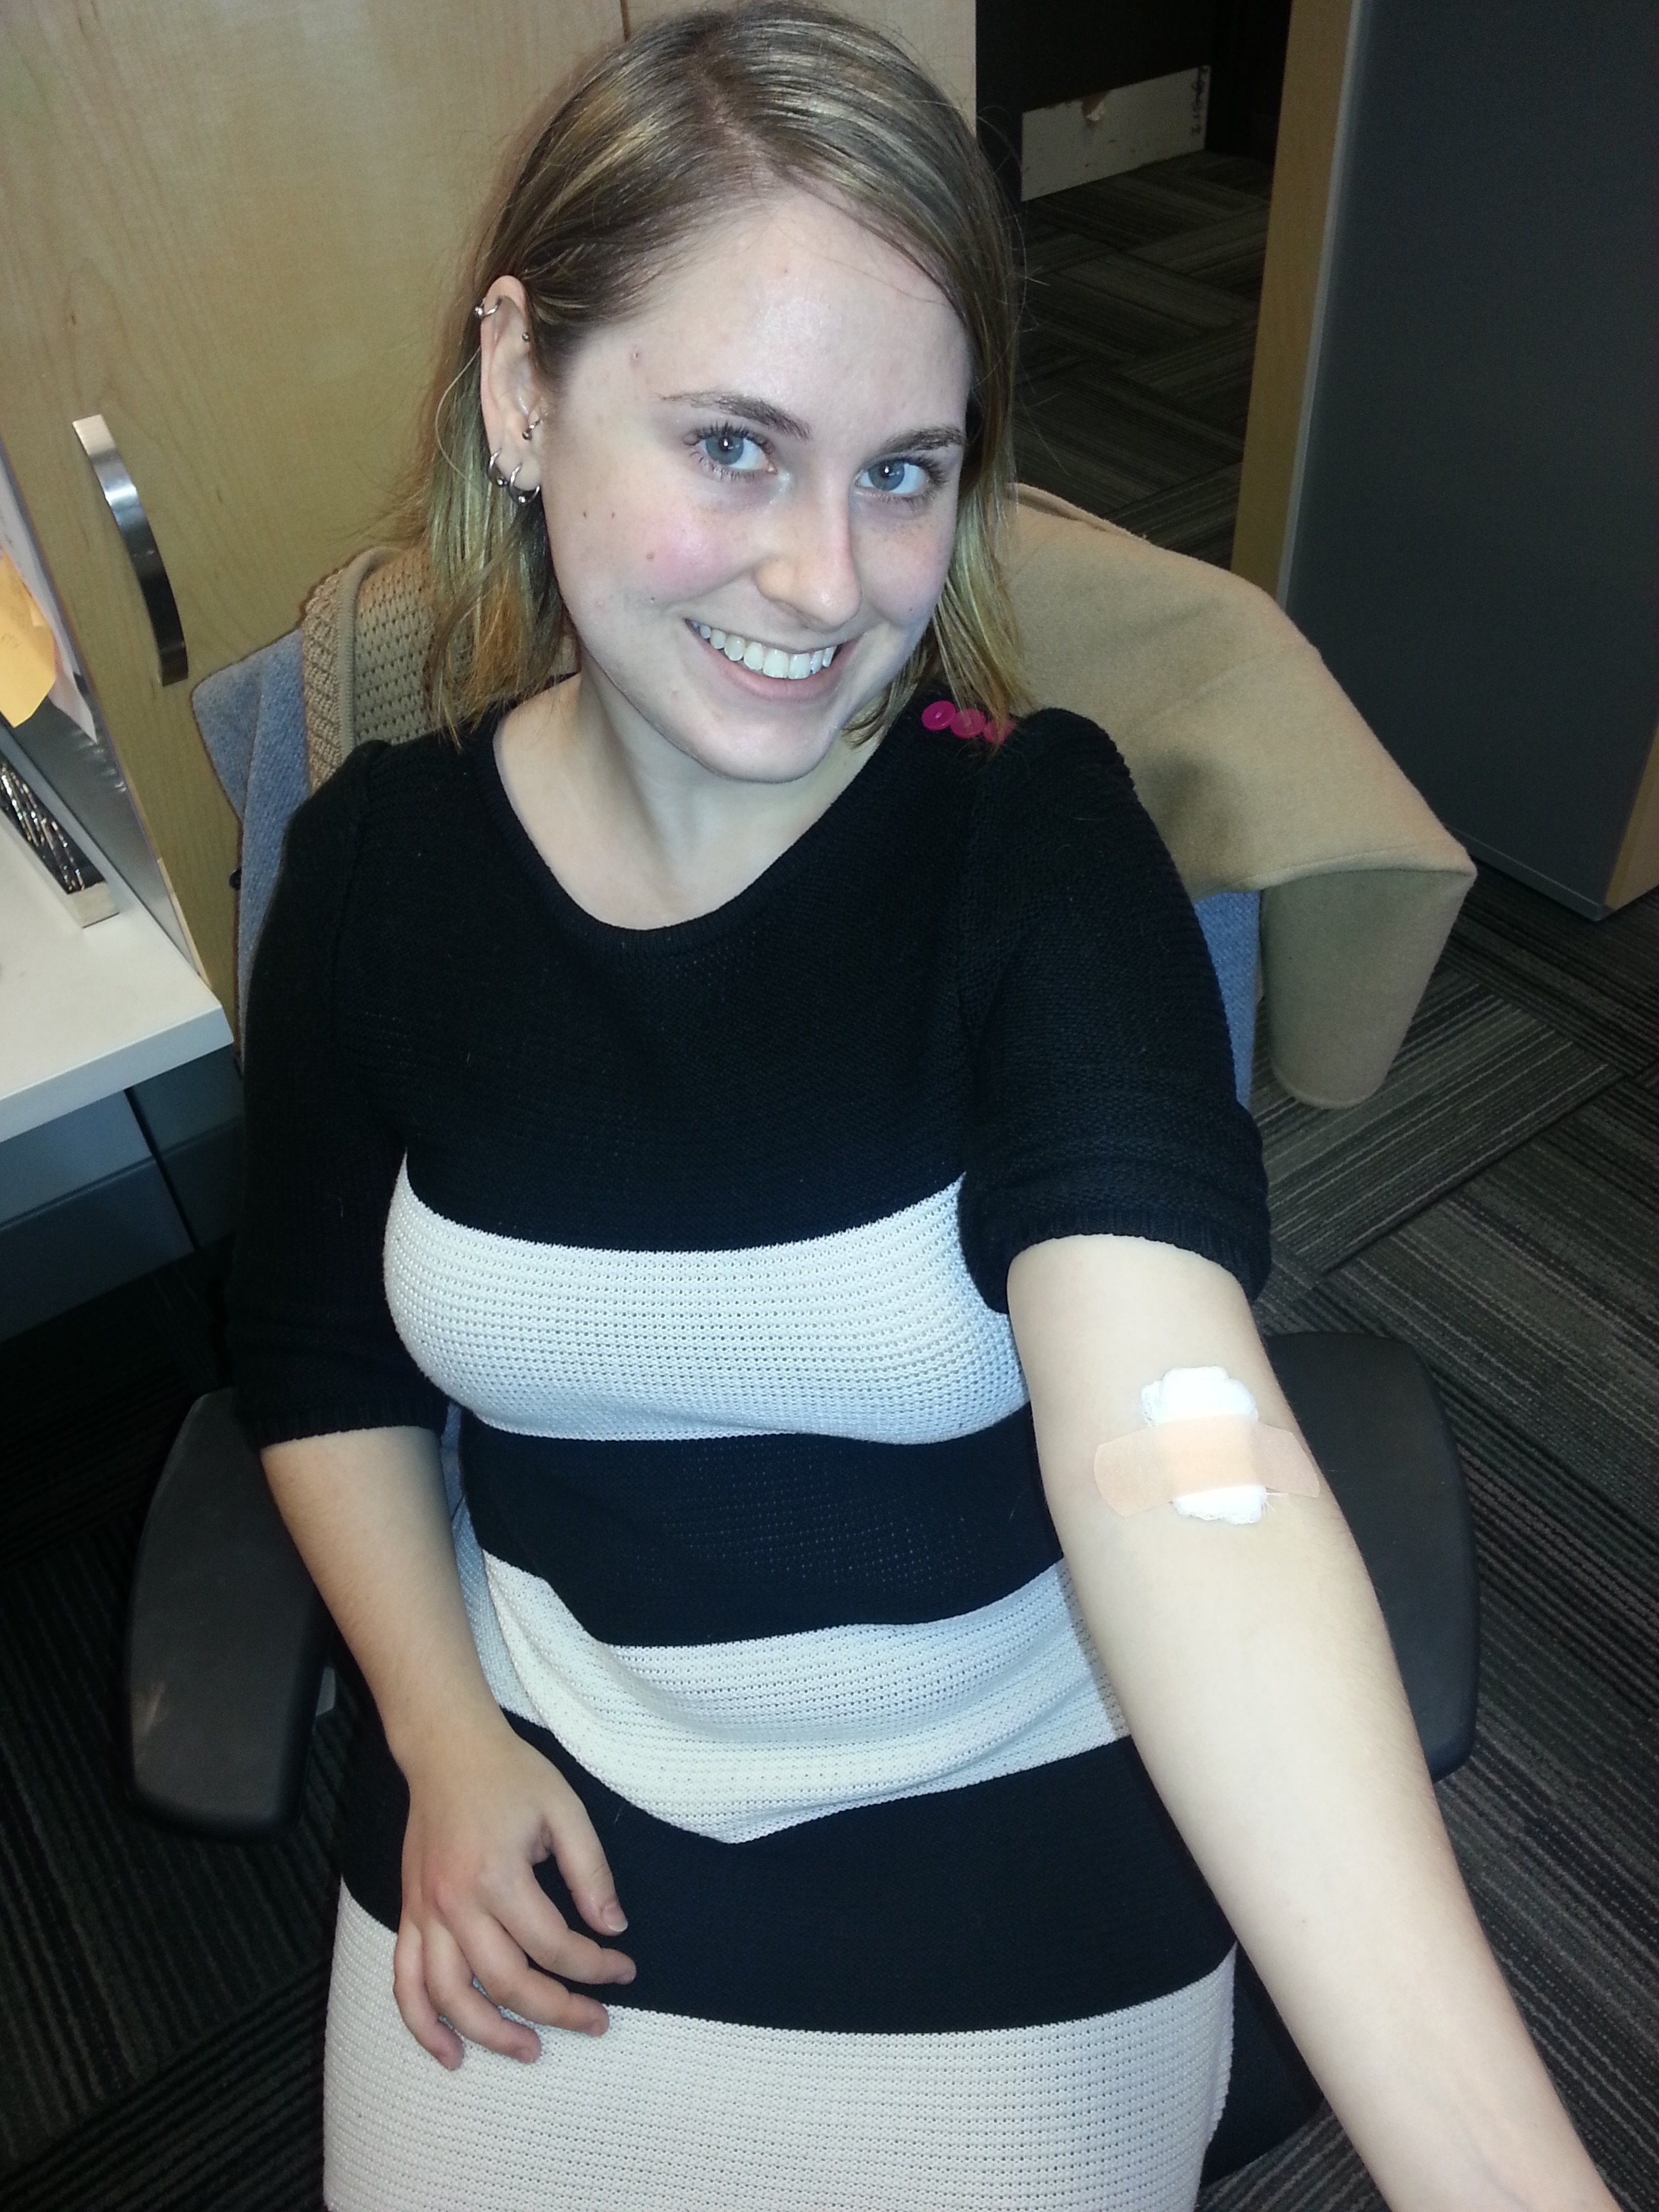 KindCycle Jacki Slovitt gave blood